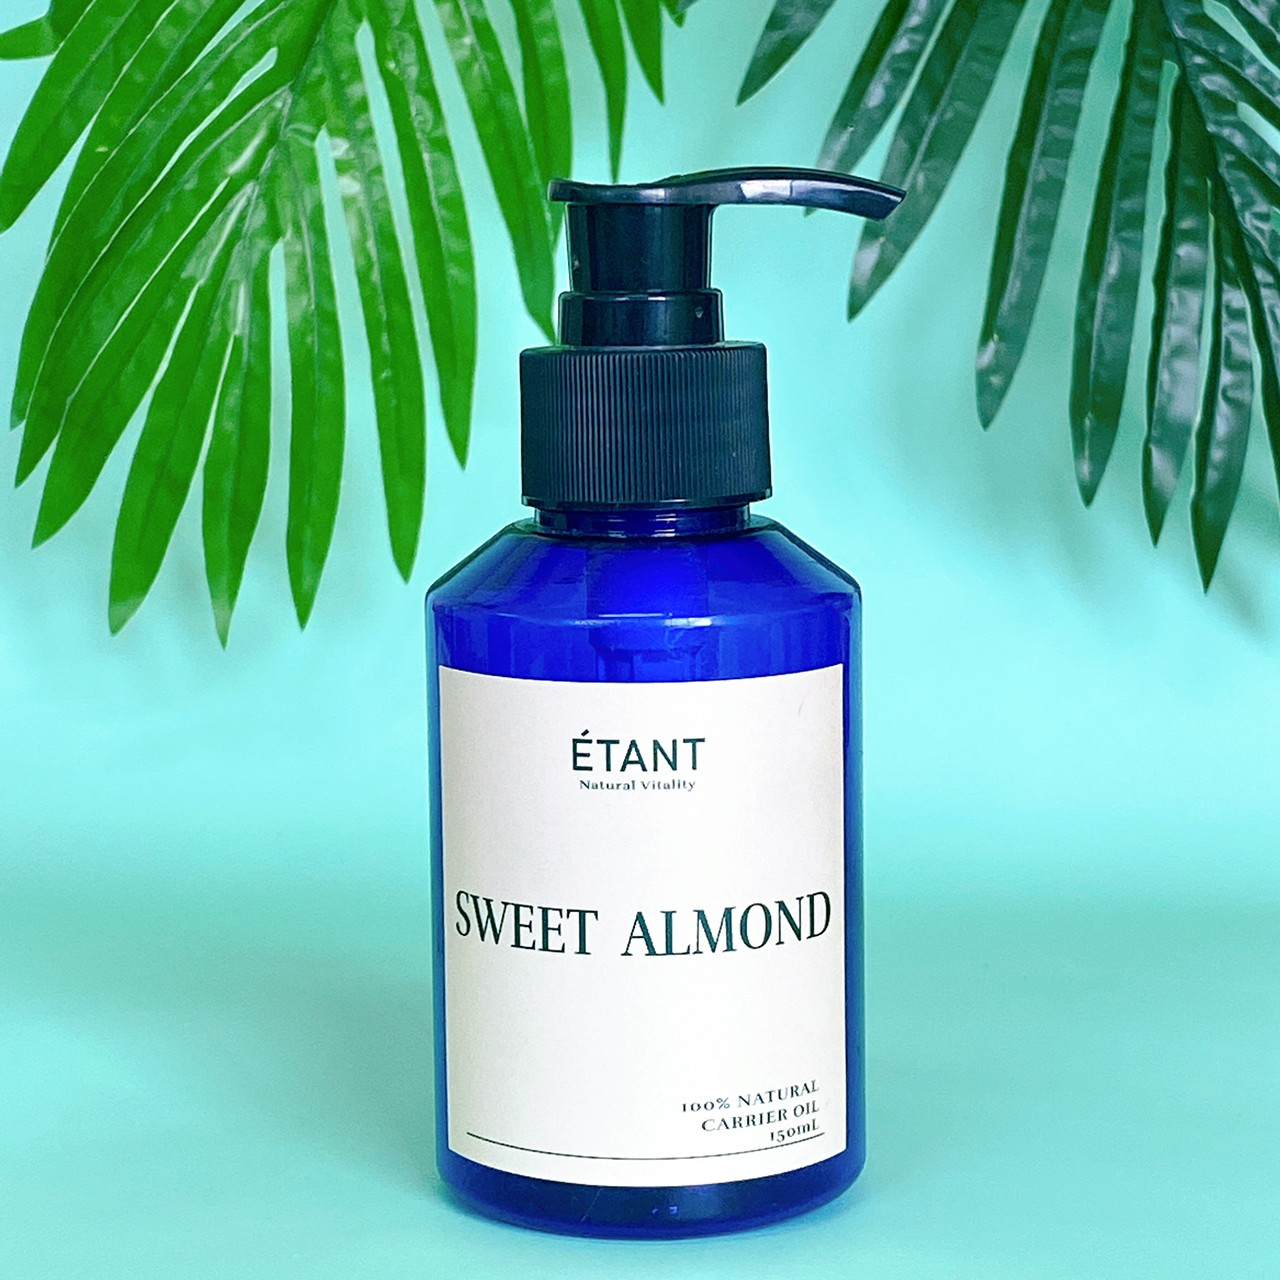 甜杏仁油 Sweet almond oil